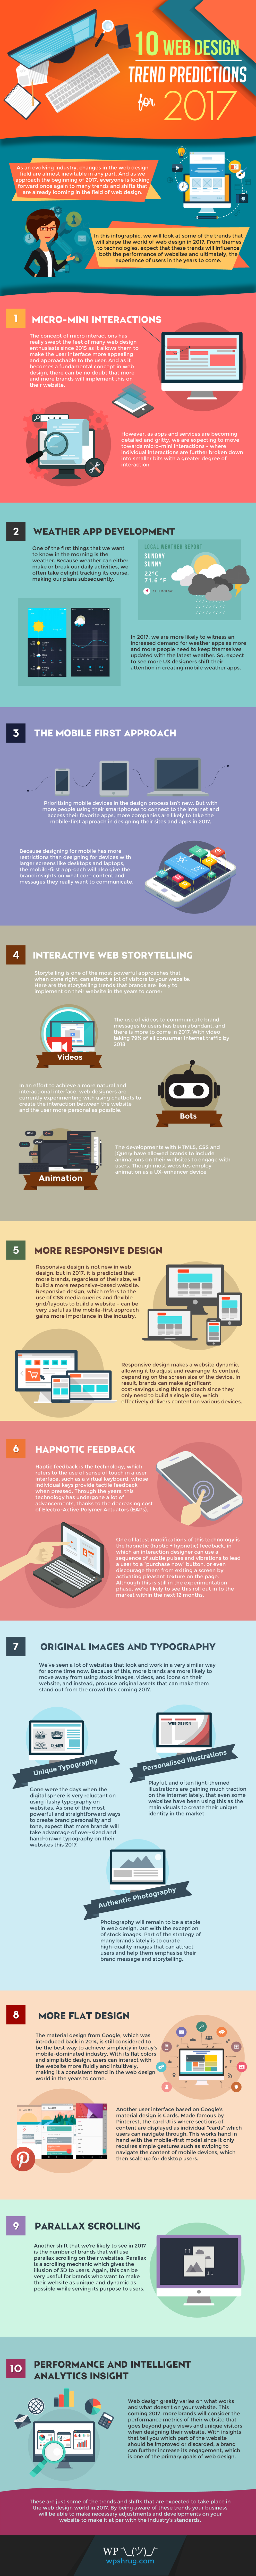 10 Web Design Trend Predictions for 2017 - Infographic